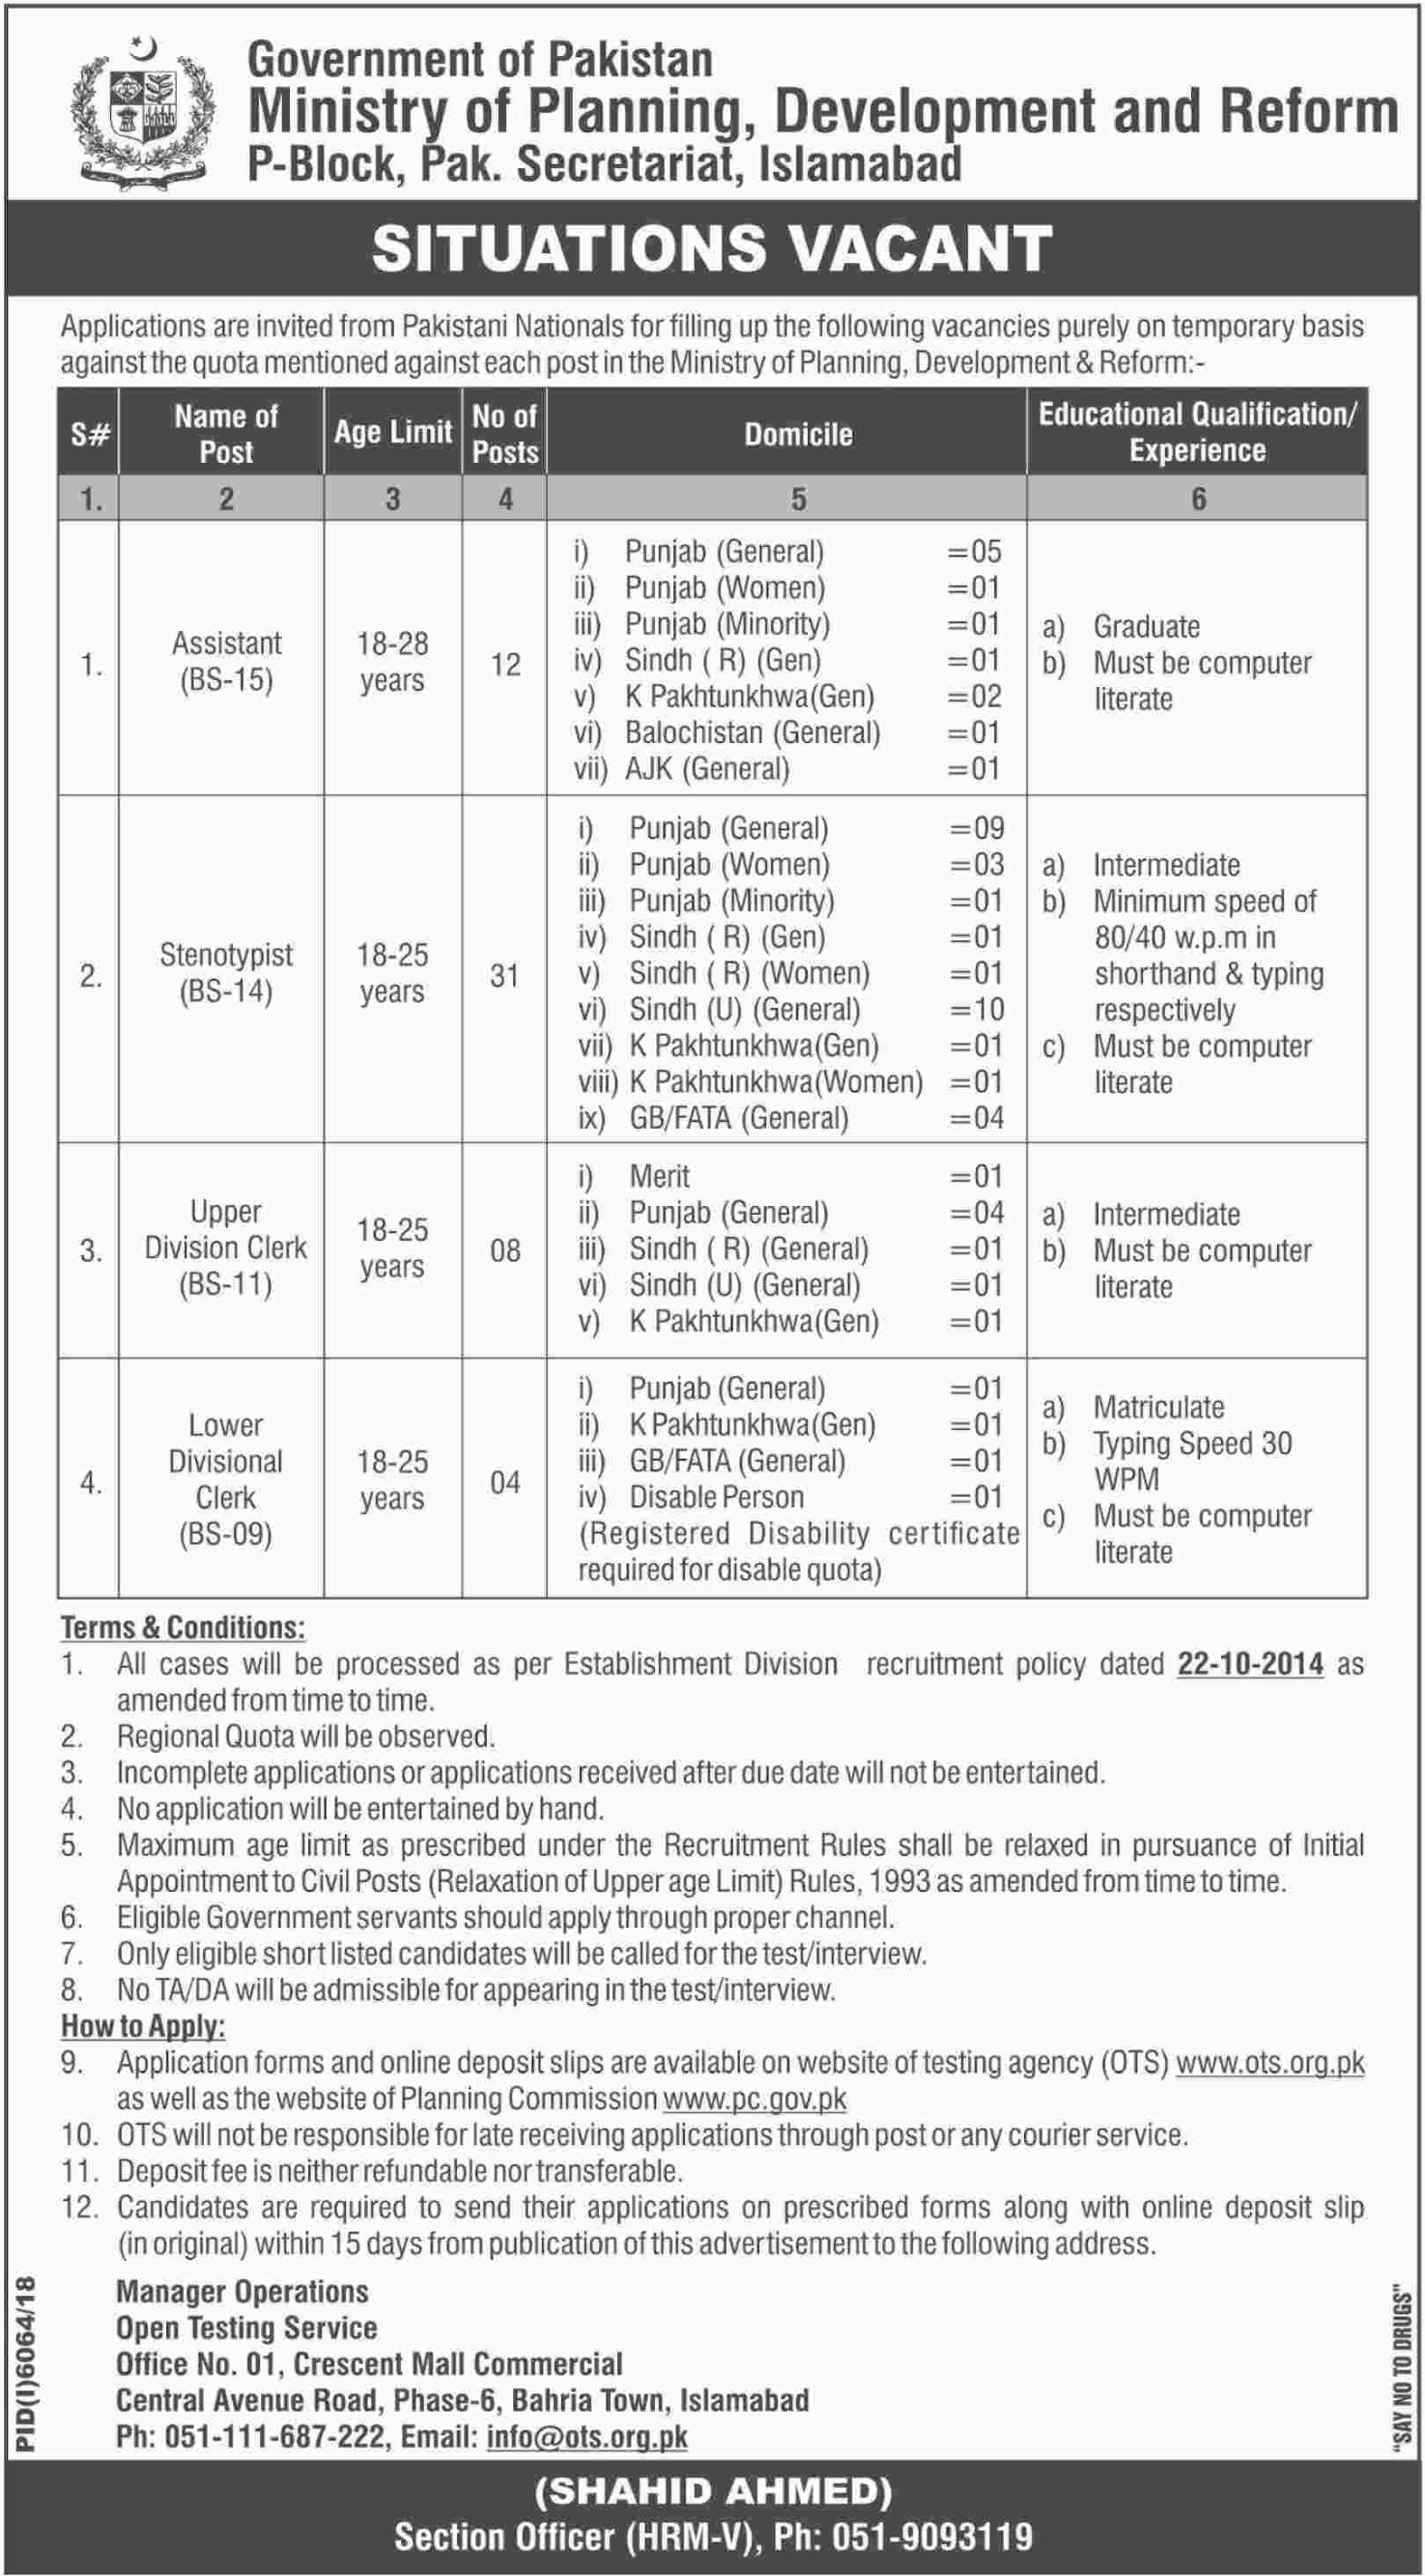 Ministry of Planning Development and Reform Islamabad Jobs 2019 through OTS